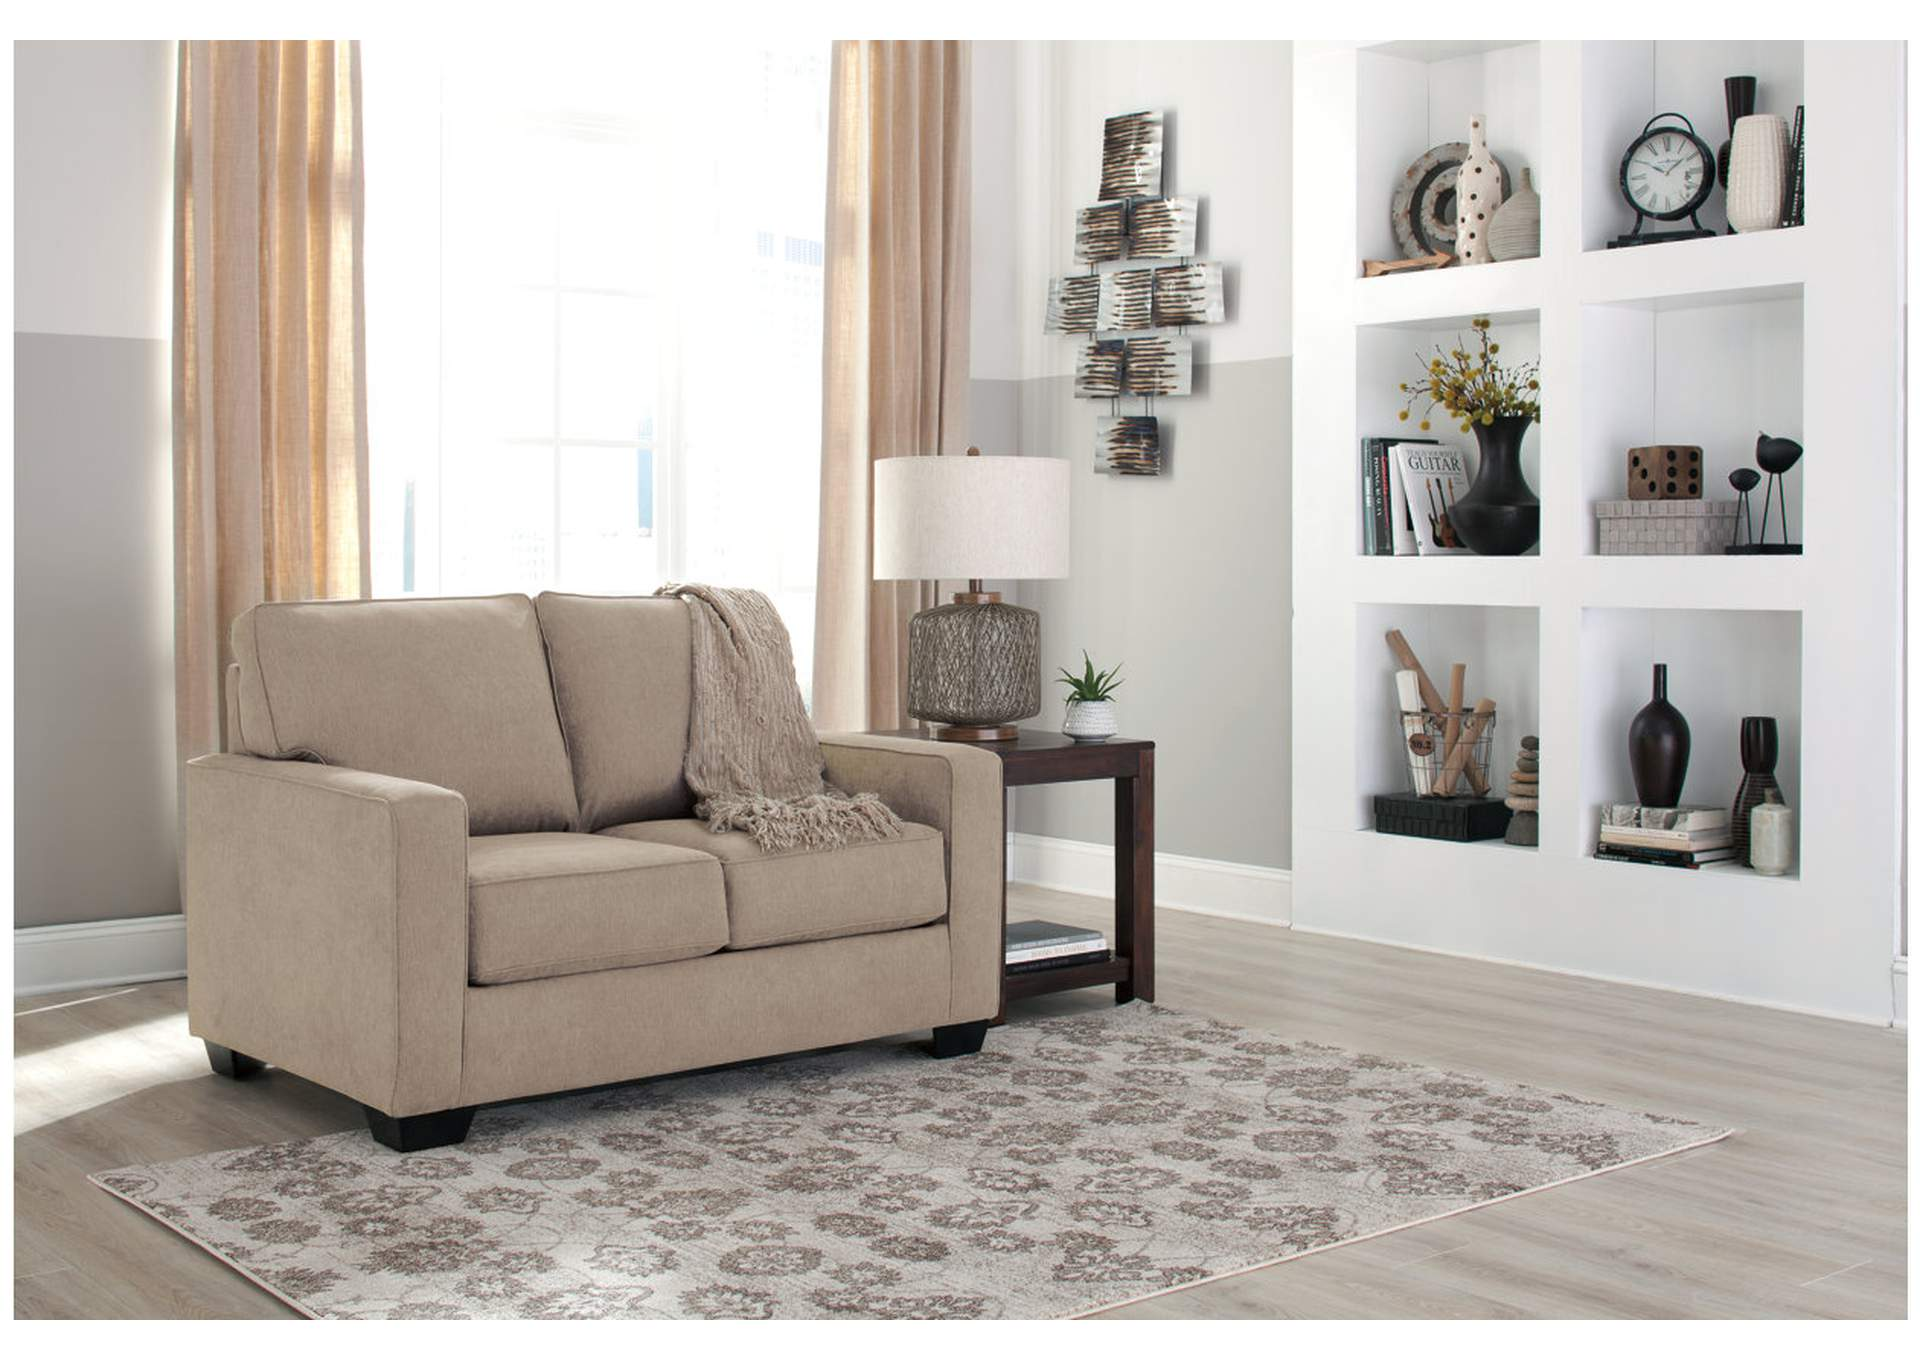 Zeb Quartz Twin Sofa Sleeper,Signature Design By Ashley